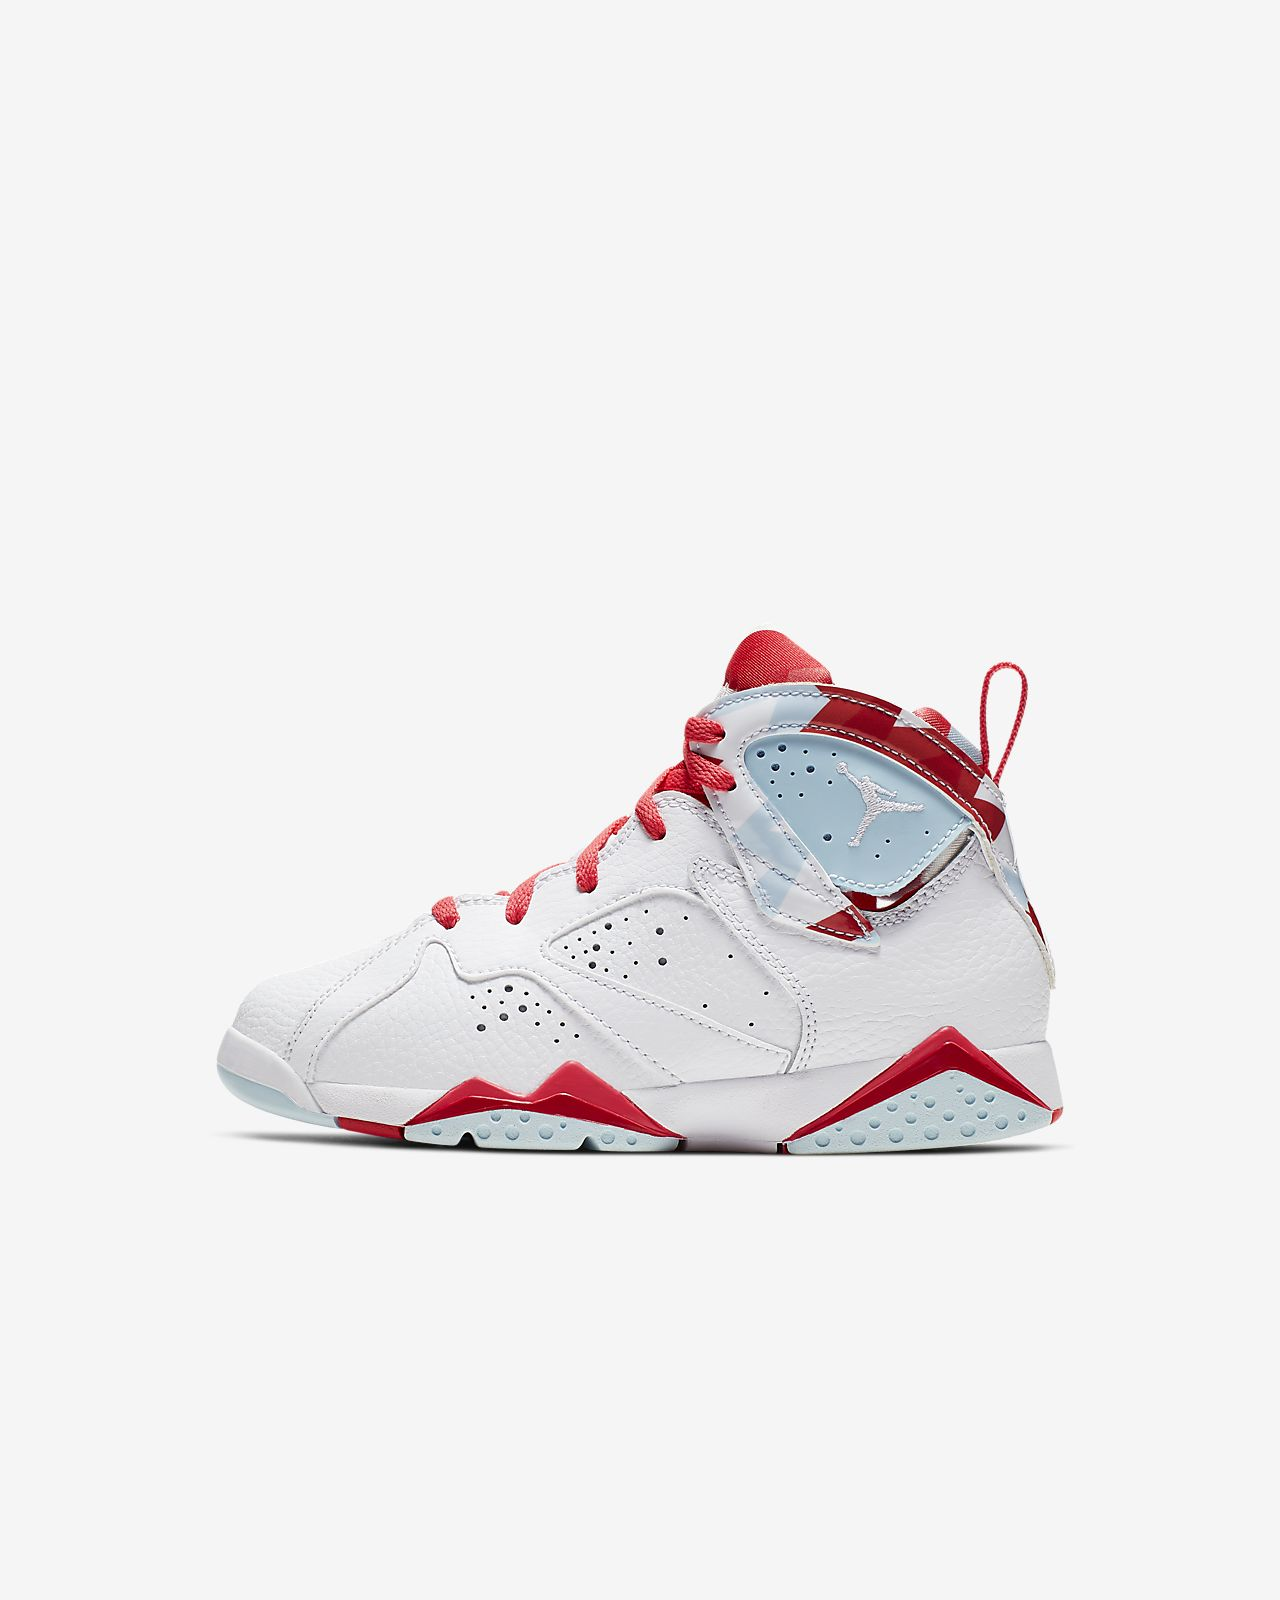 6f46d3a3961 Air Jordan 7 Retro (10.5c-3y) Pre-School Girls' Shoe. Nike.com